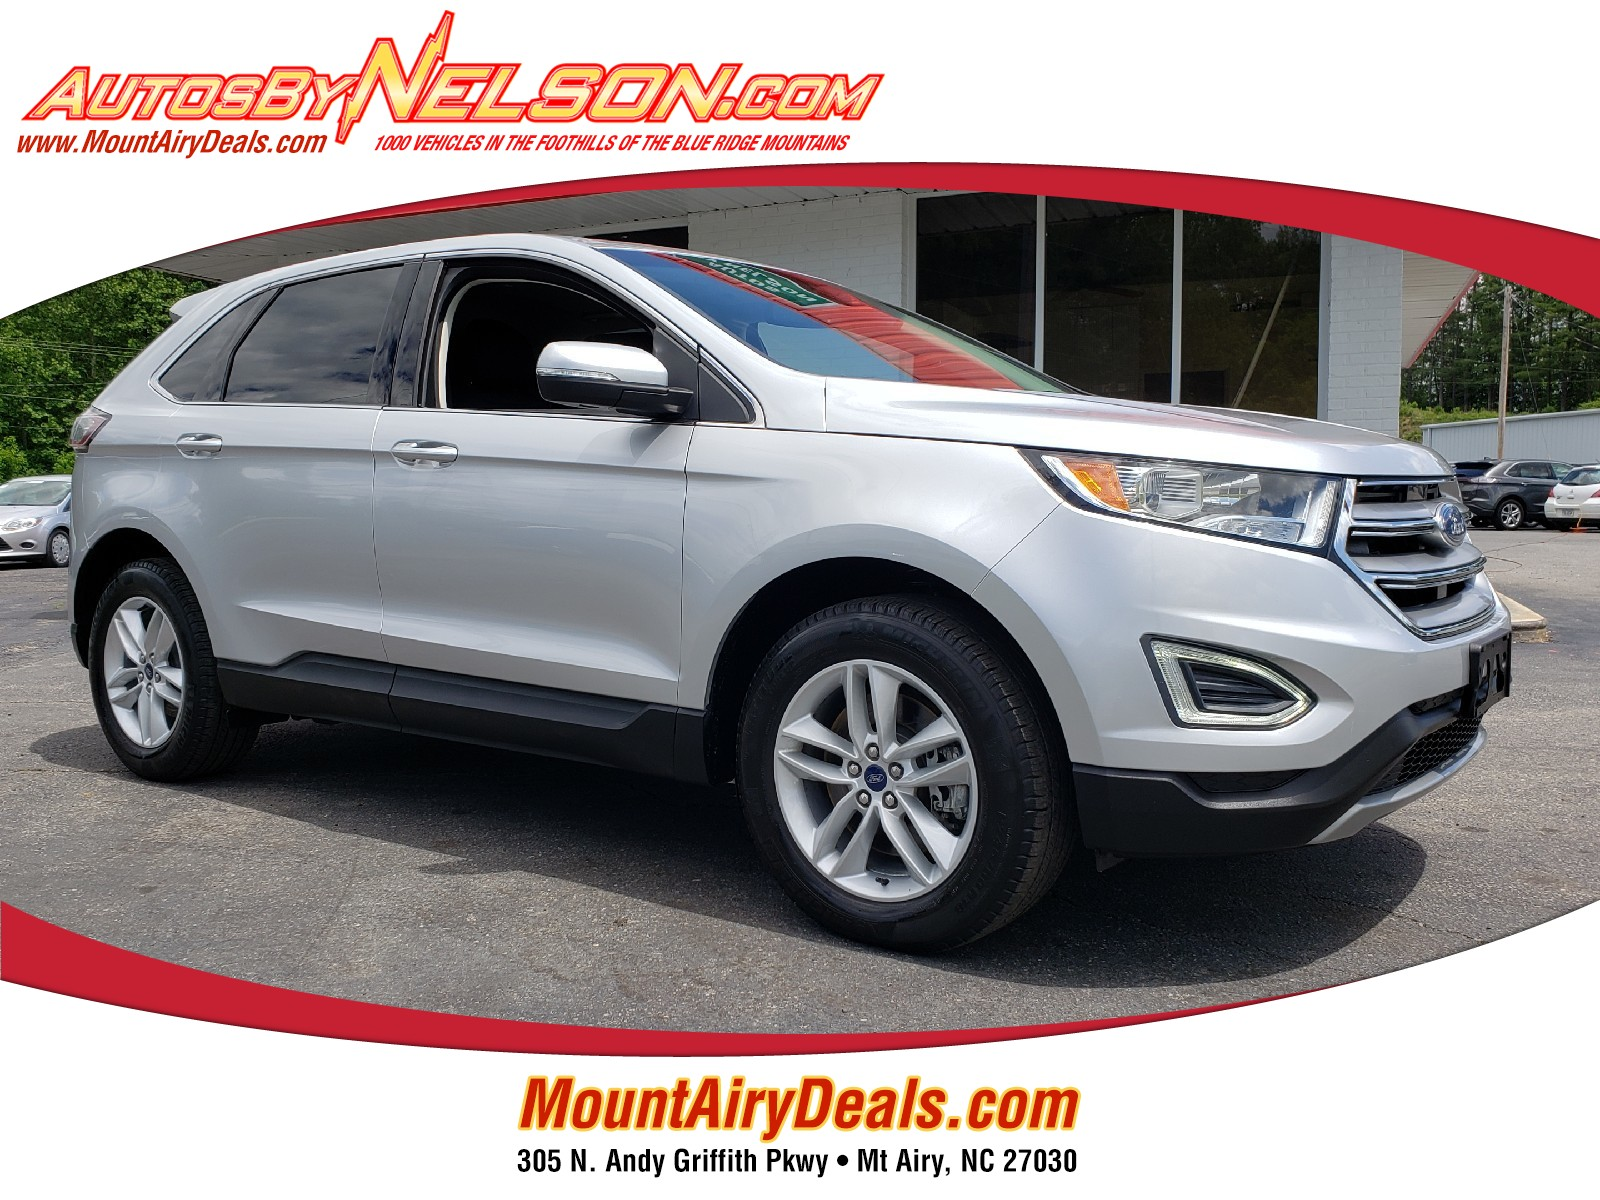 Used 2015 Ford Edge for Sale in Stanleytown, VA (MA997)